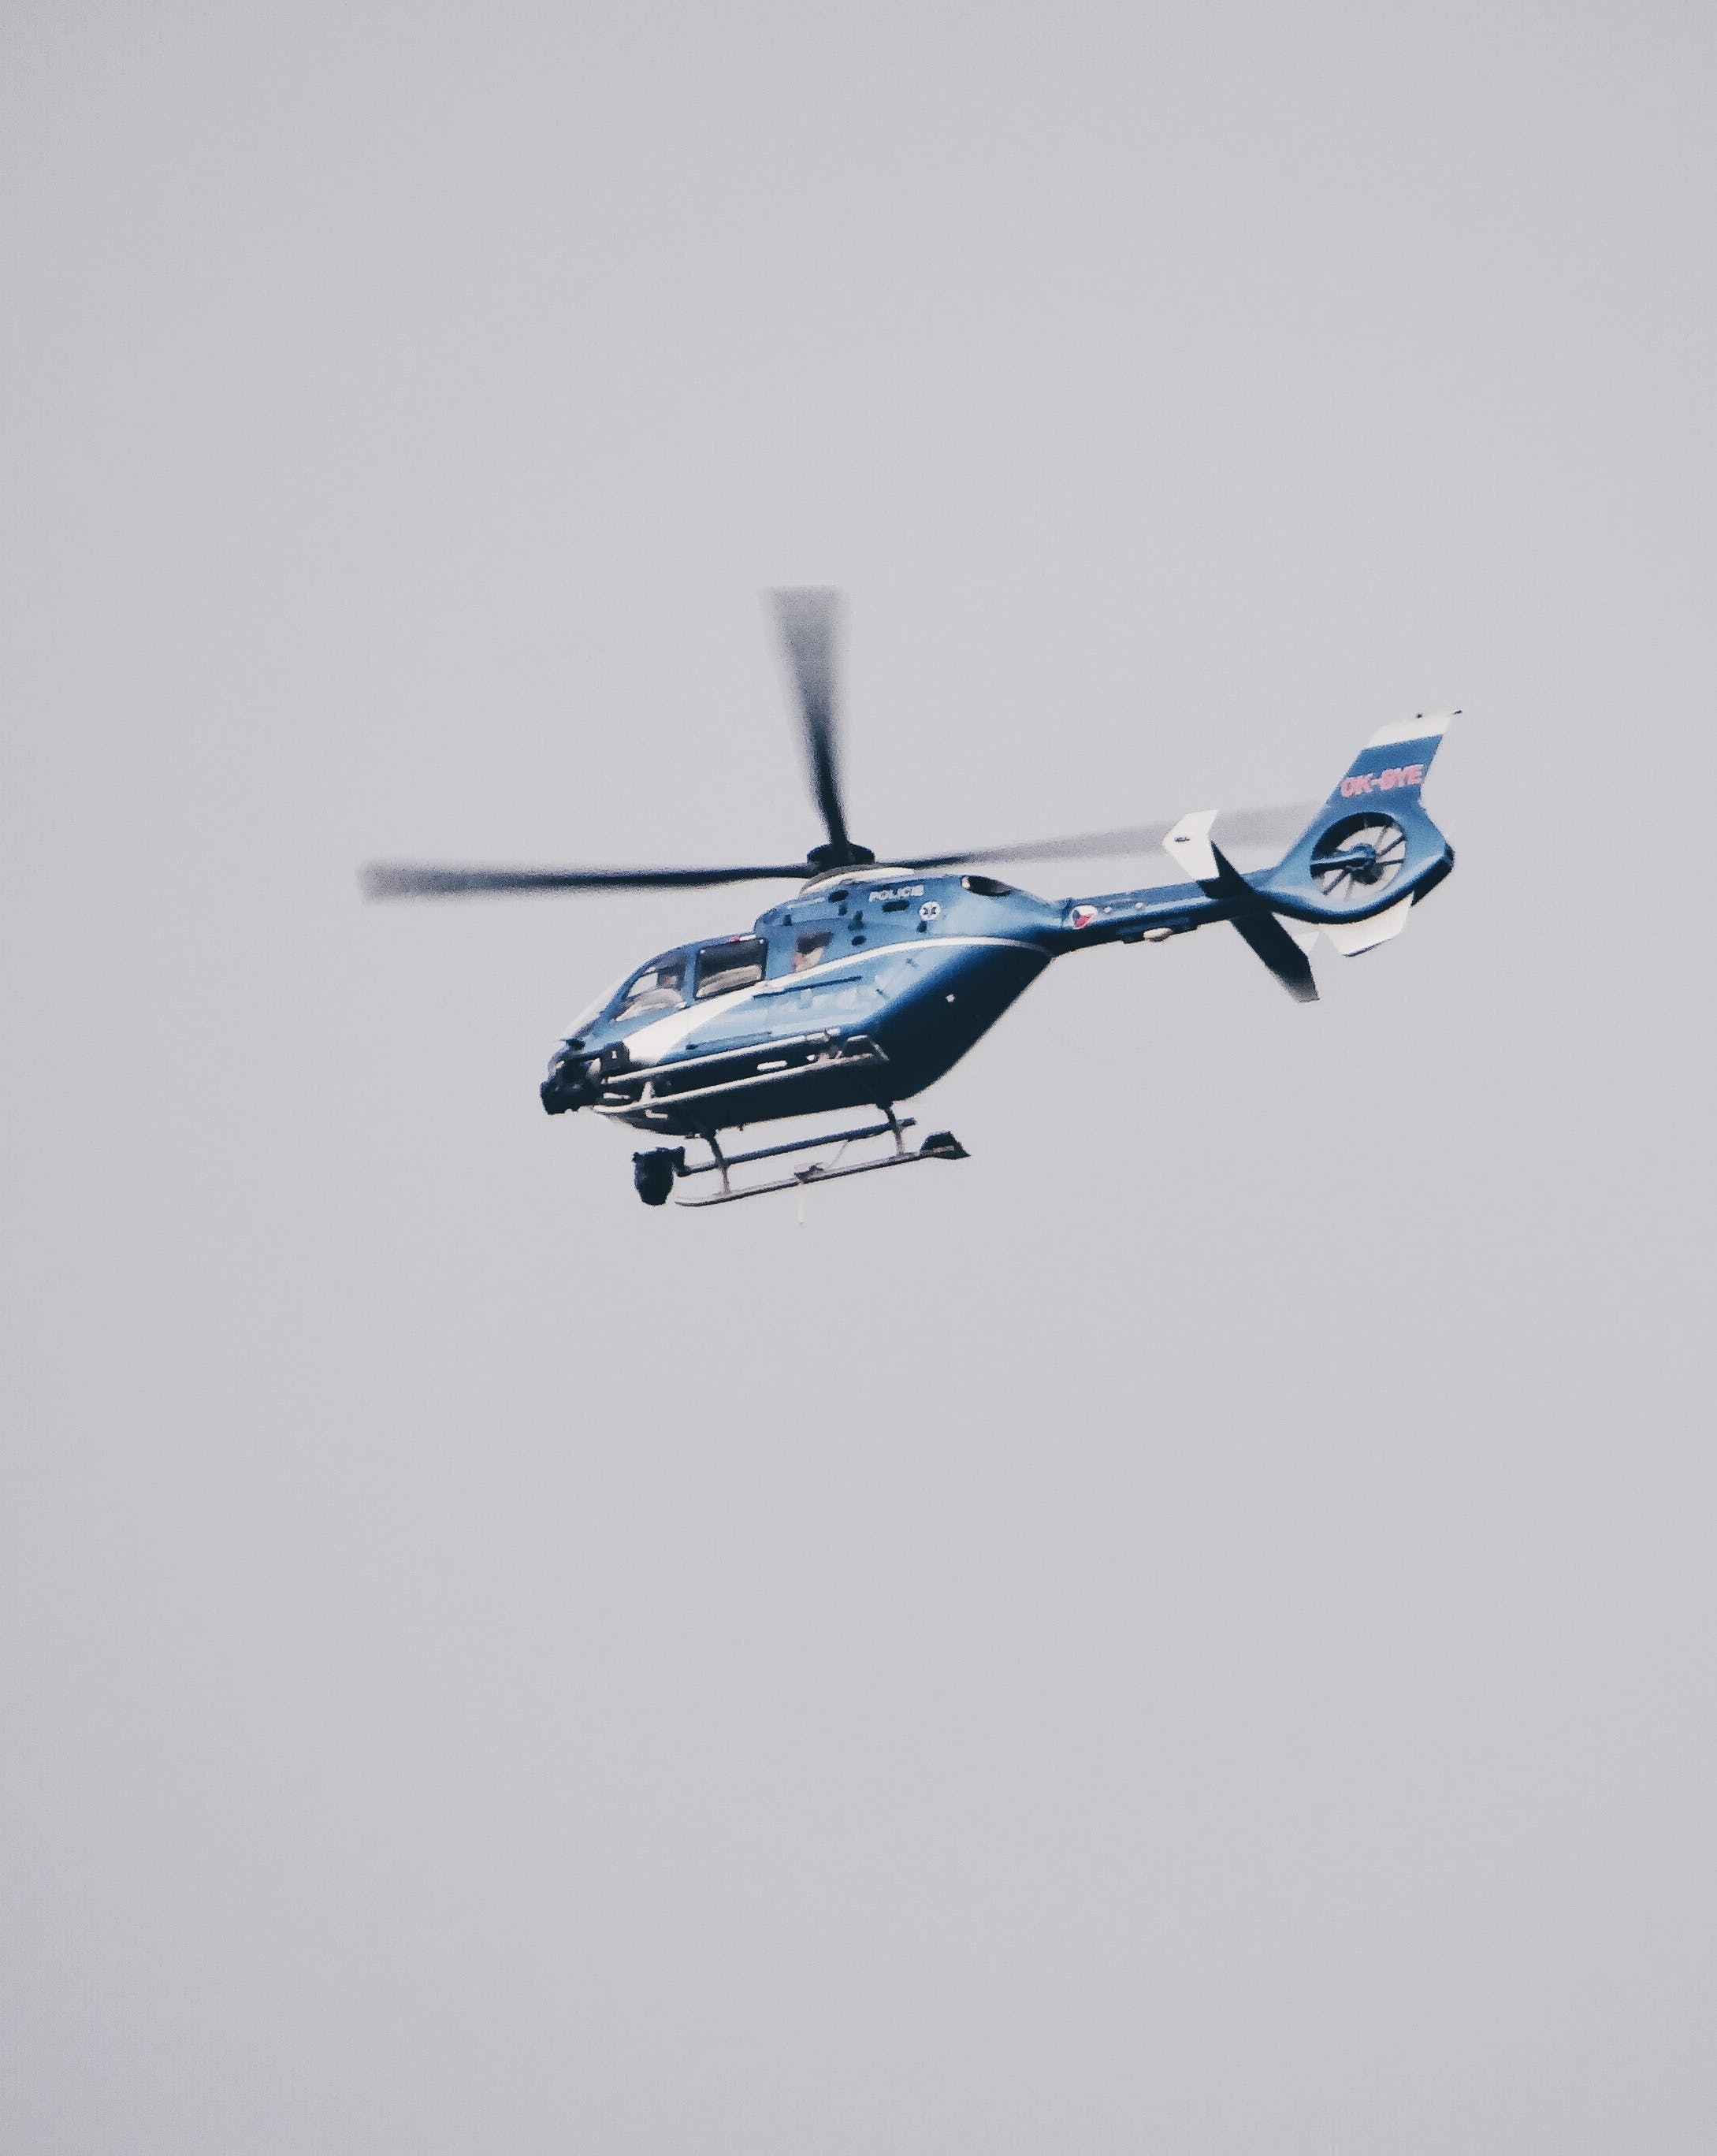 Photo of Helicopter on Flight